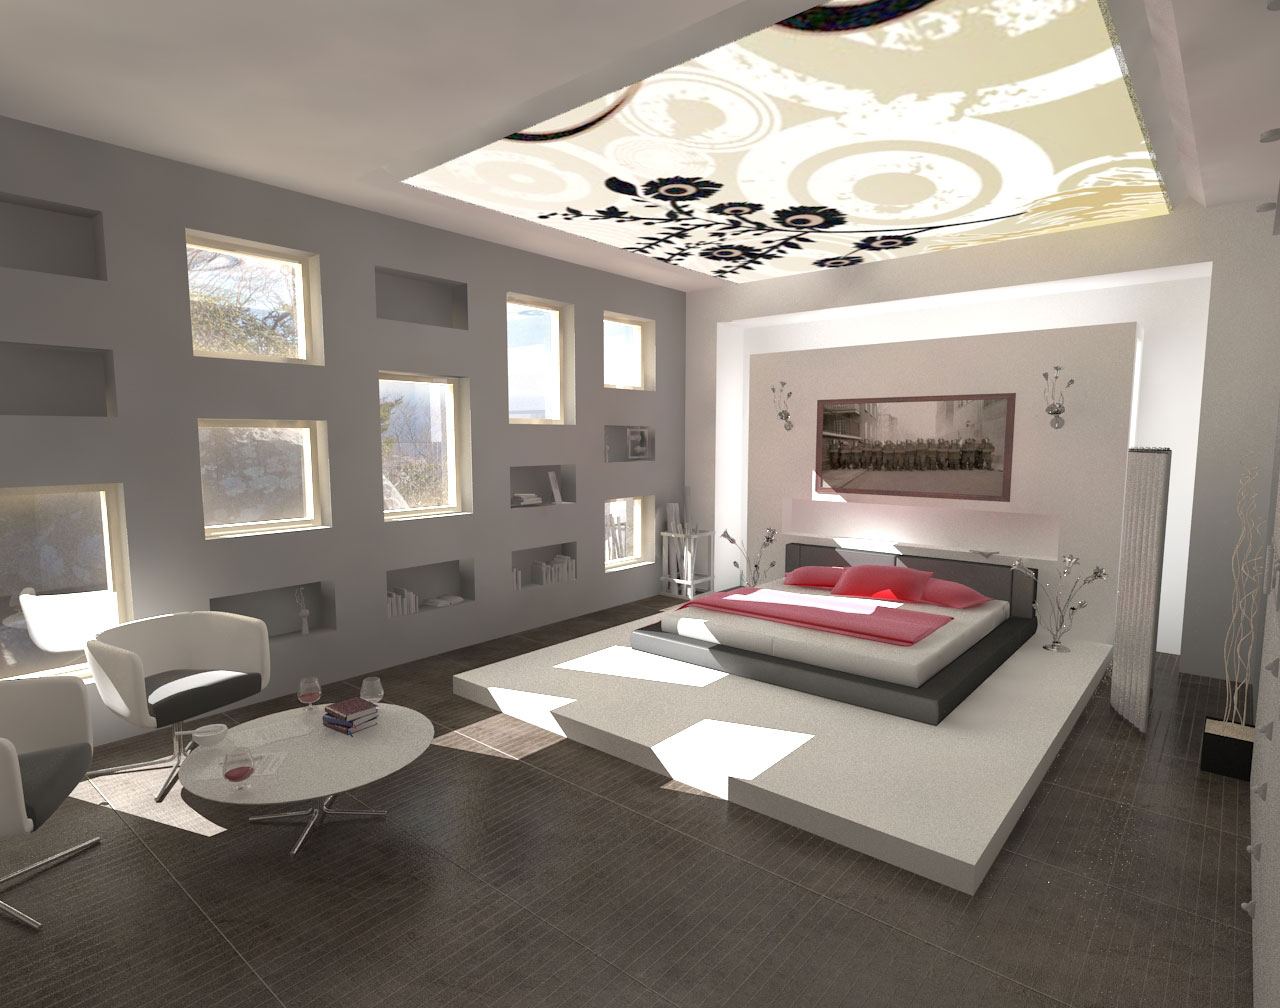 Amazing Bedroom Interior Design Ideas 1280 x 1008 · 183 kB · jpeg